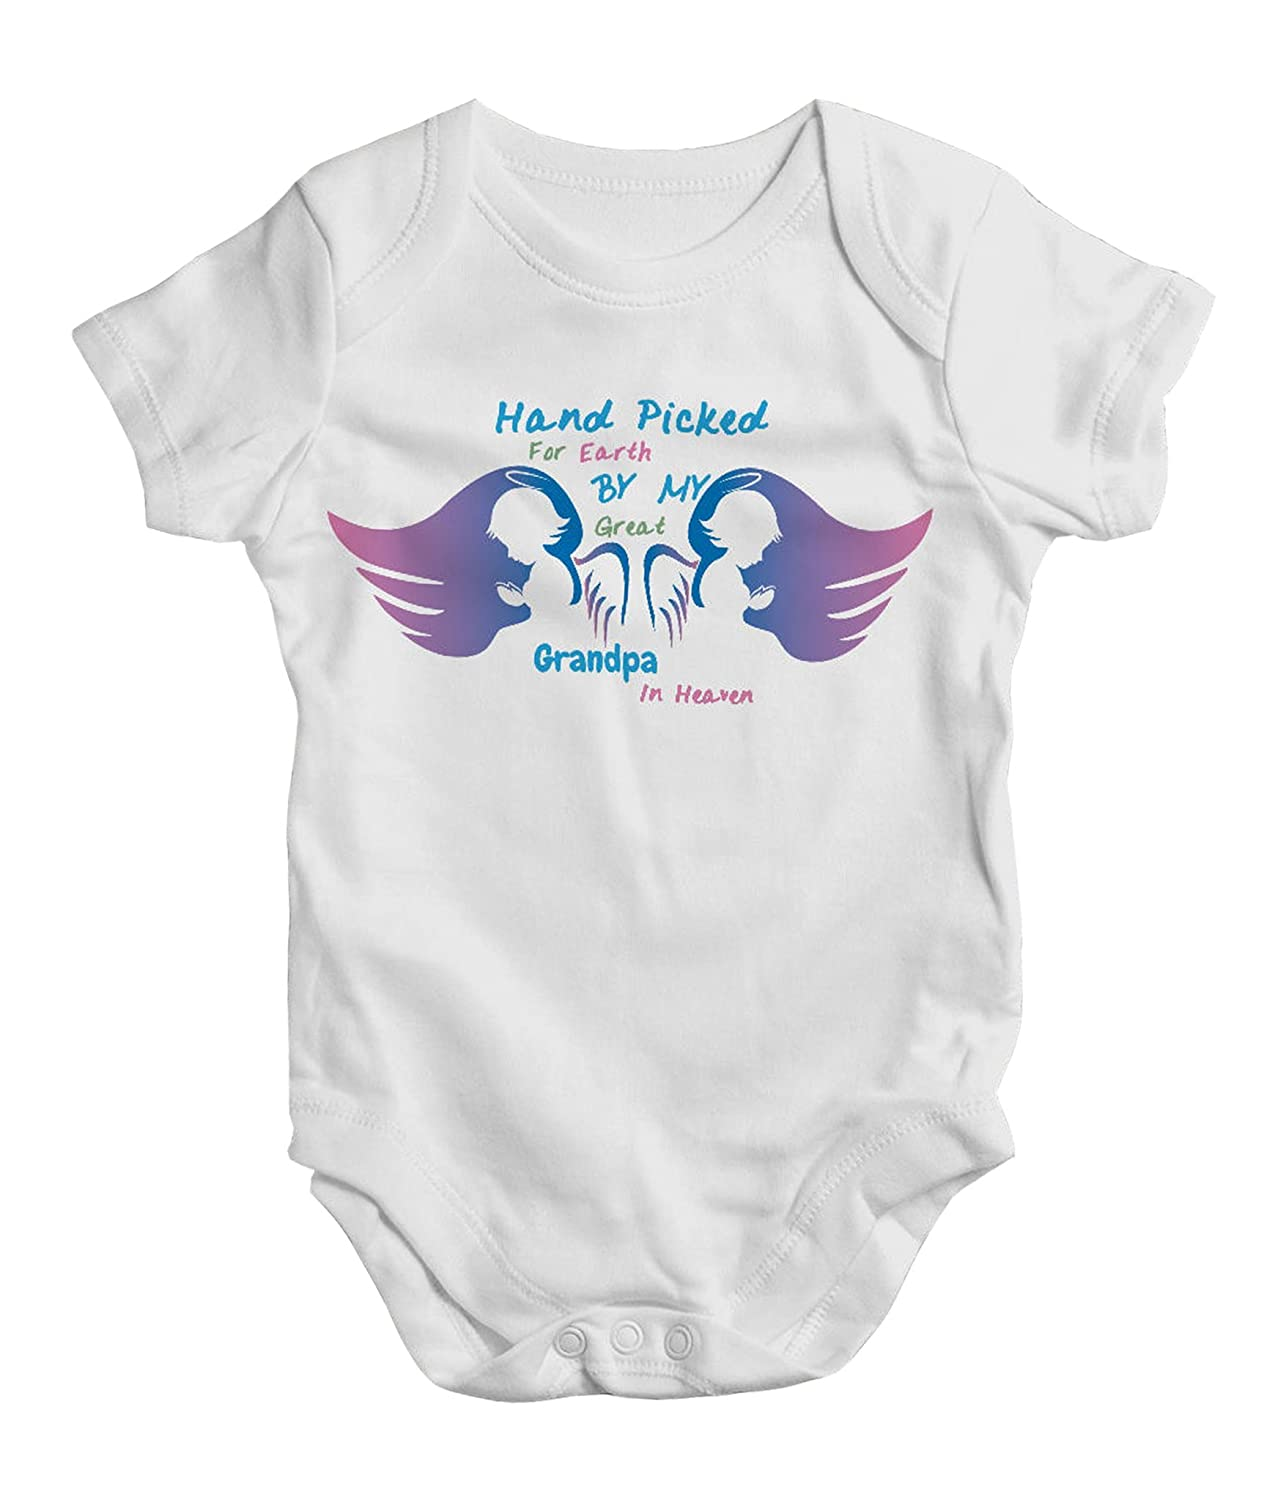 10f765e9a Amazon.com: Hand Picked for Earth by My Great Grandpa in Heaven, Funny Baby  Bodysuit, One Piece, New Born, Outfit, Baby Shower: Clothing